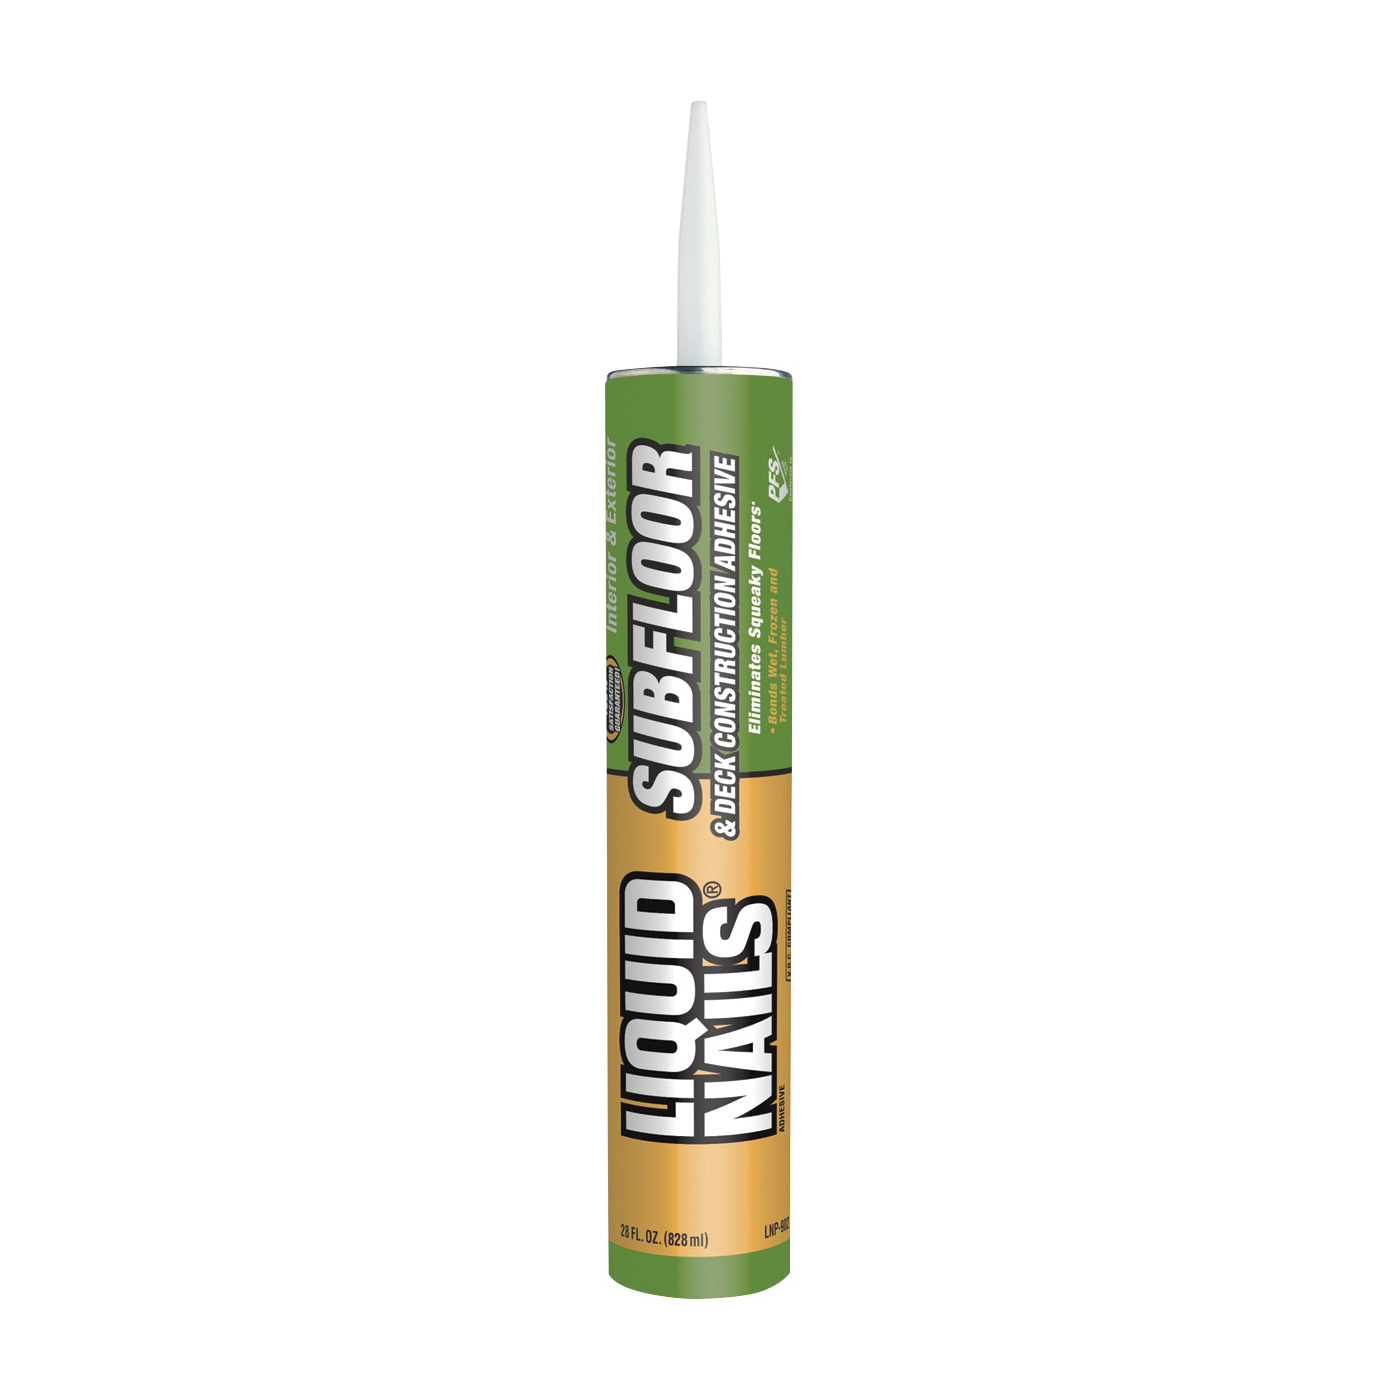 Picture of Liquid Nails LNP-902 Construction Adhesive, White, 28 oz Package, Cartridge